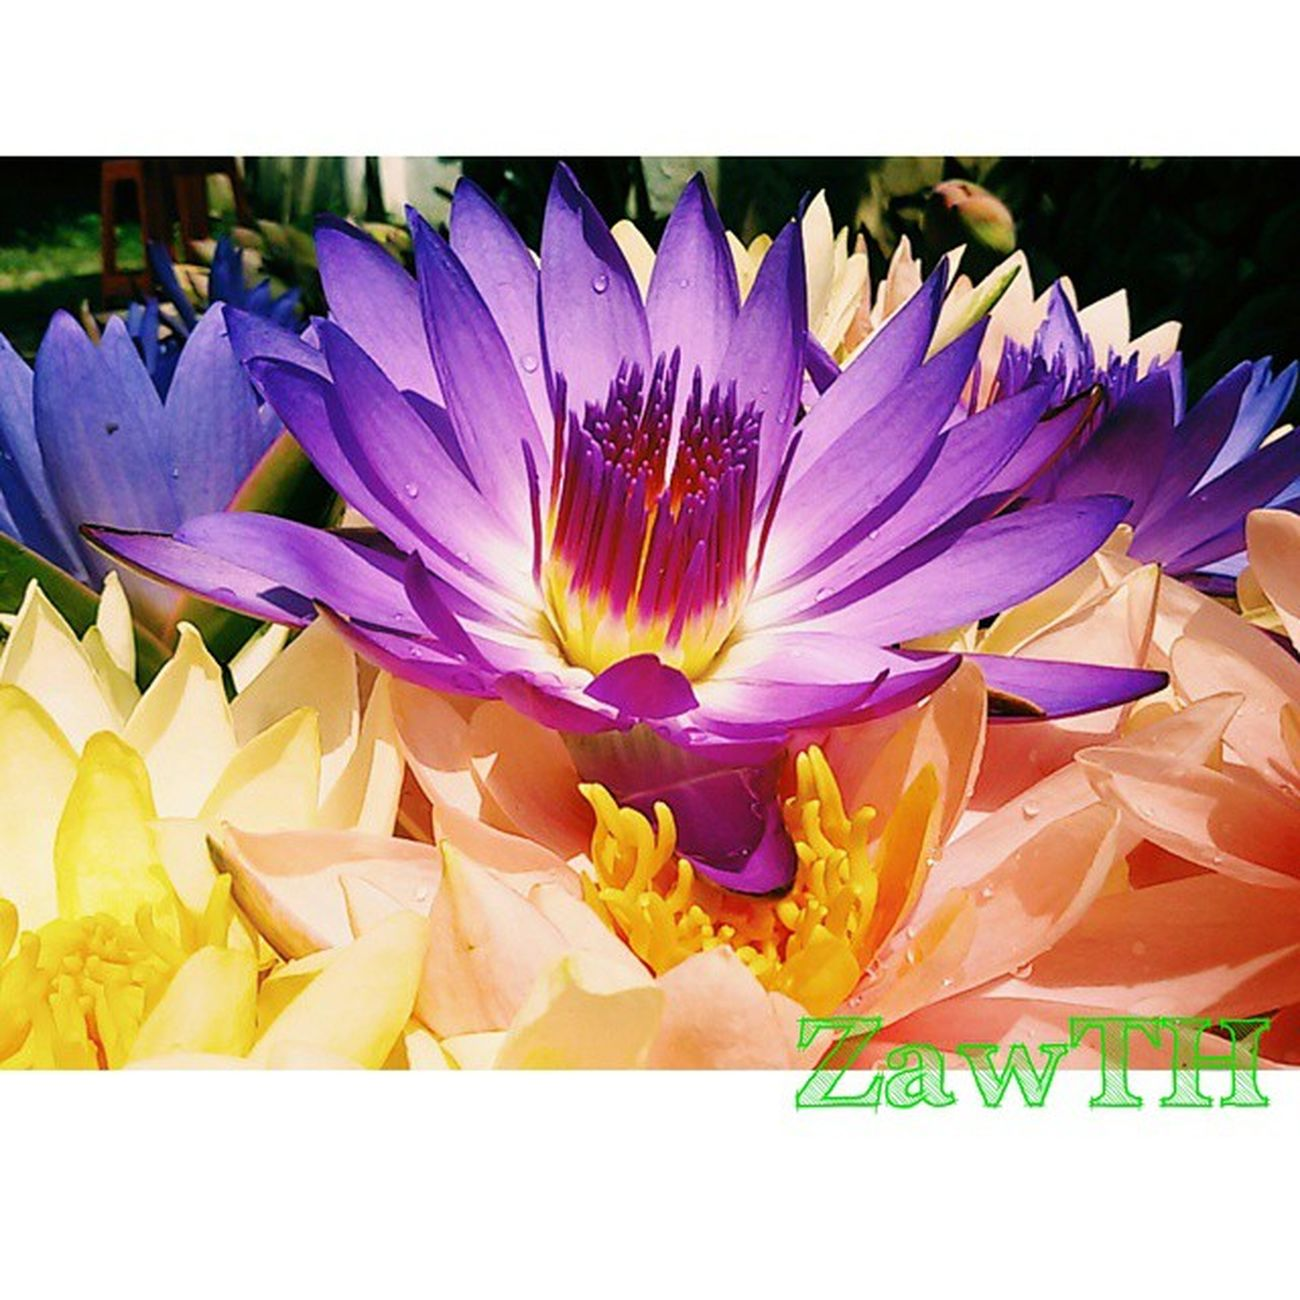 The noble flower. Though you flourish in the swamp …you are always pure.Zawth Mandalay Myanmar Myanmarphotos Igersmandalay Igersmyanmar Vscomyanmar Vscoflowers Instagram Ig_sharepoint Ig_worldphoto Instasize Igglobal Ig_great_shot_fla Igersflower Bsn_mobile Bsn_reflection Lotus Waterlili Rcnocrop